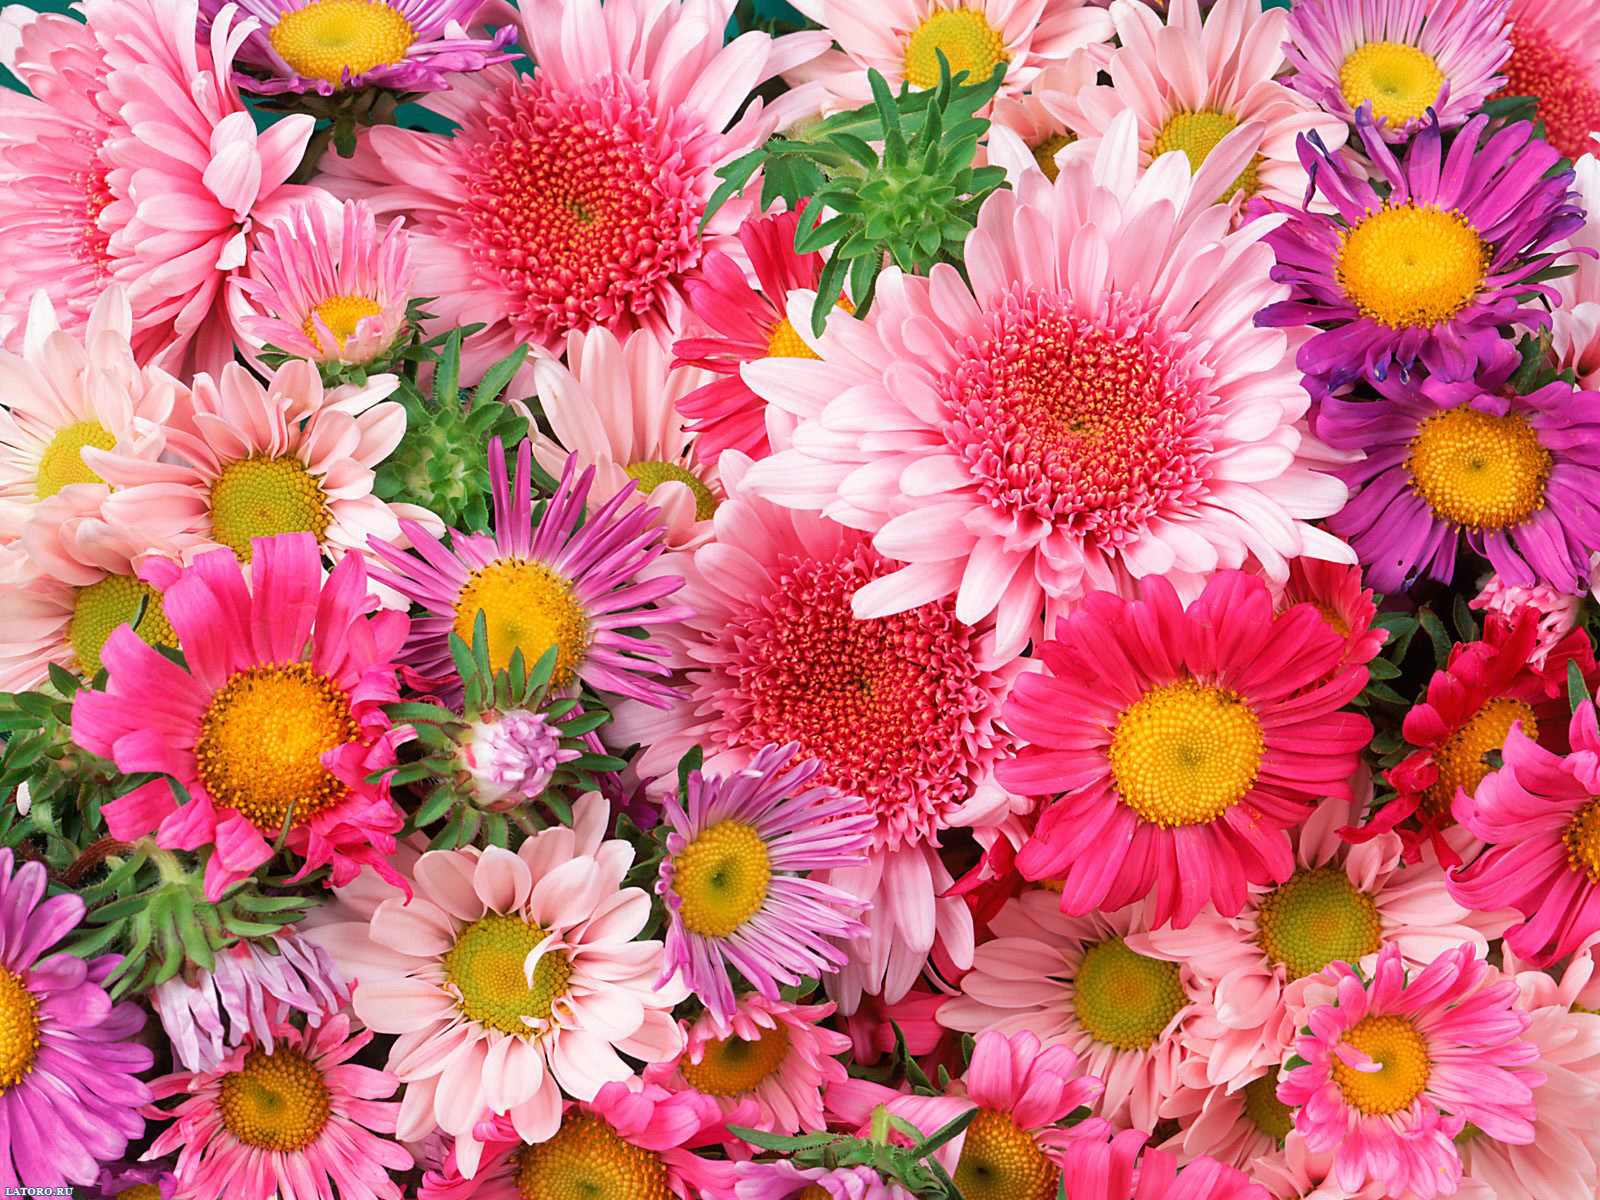 Mixed Daisies Flower Of Passion Mix Image Free Download